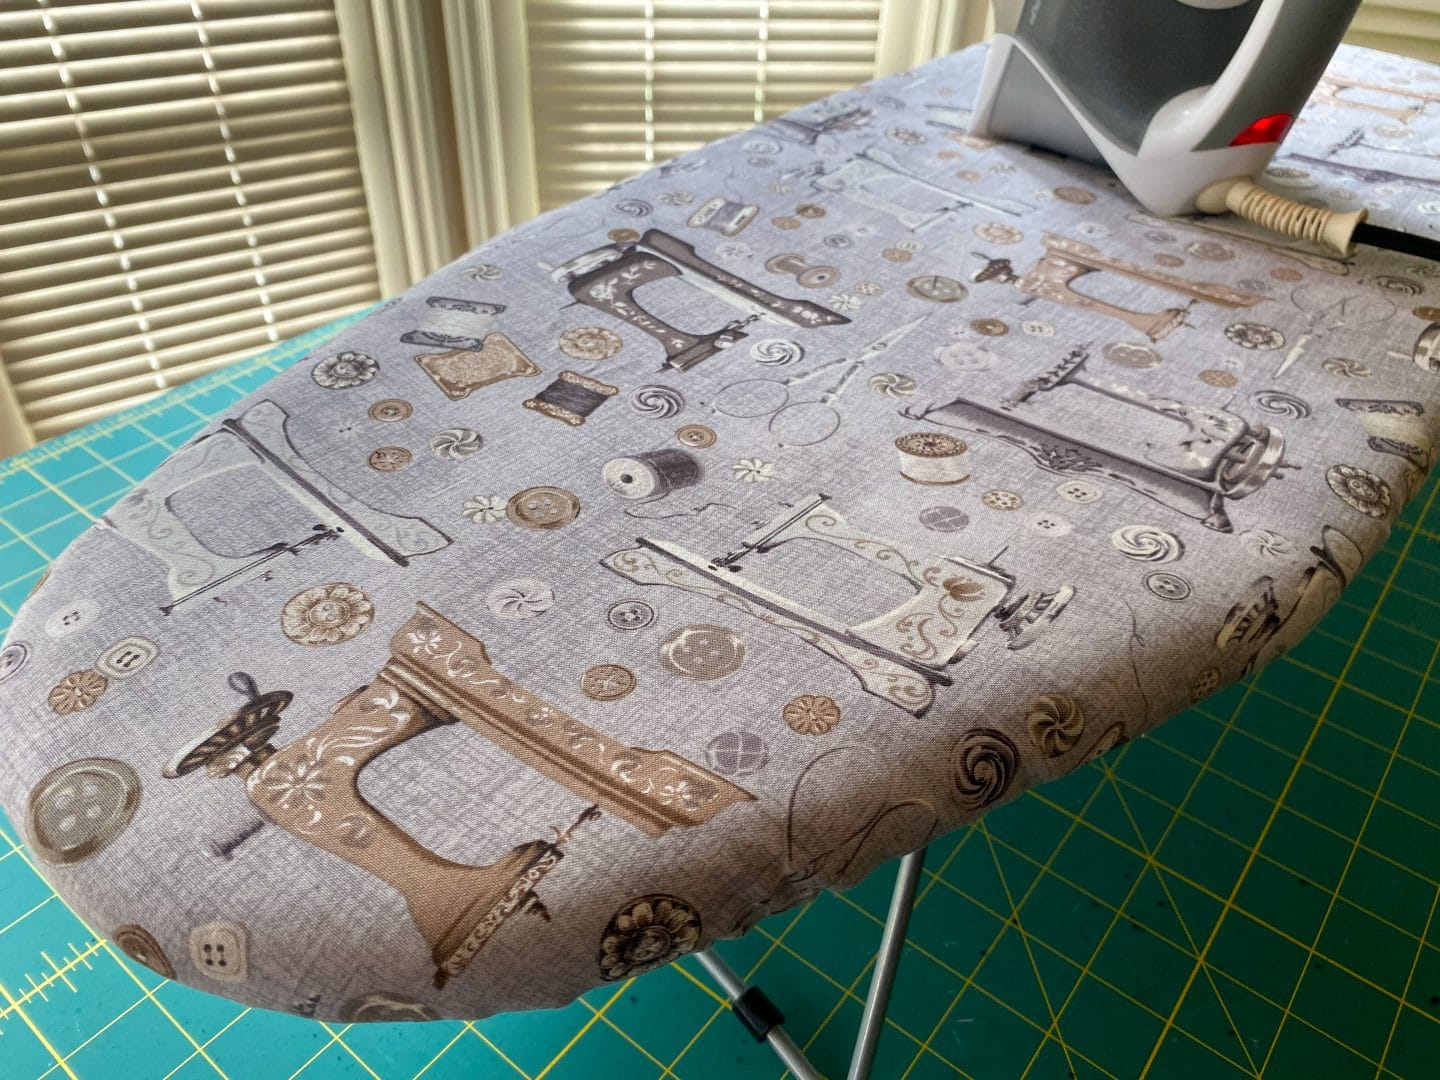 Image of an ironing board with a cover made of fabric with vintage sewing machines